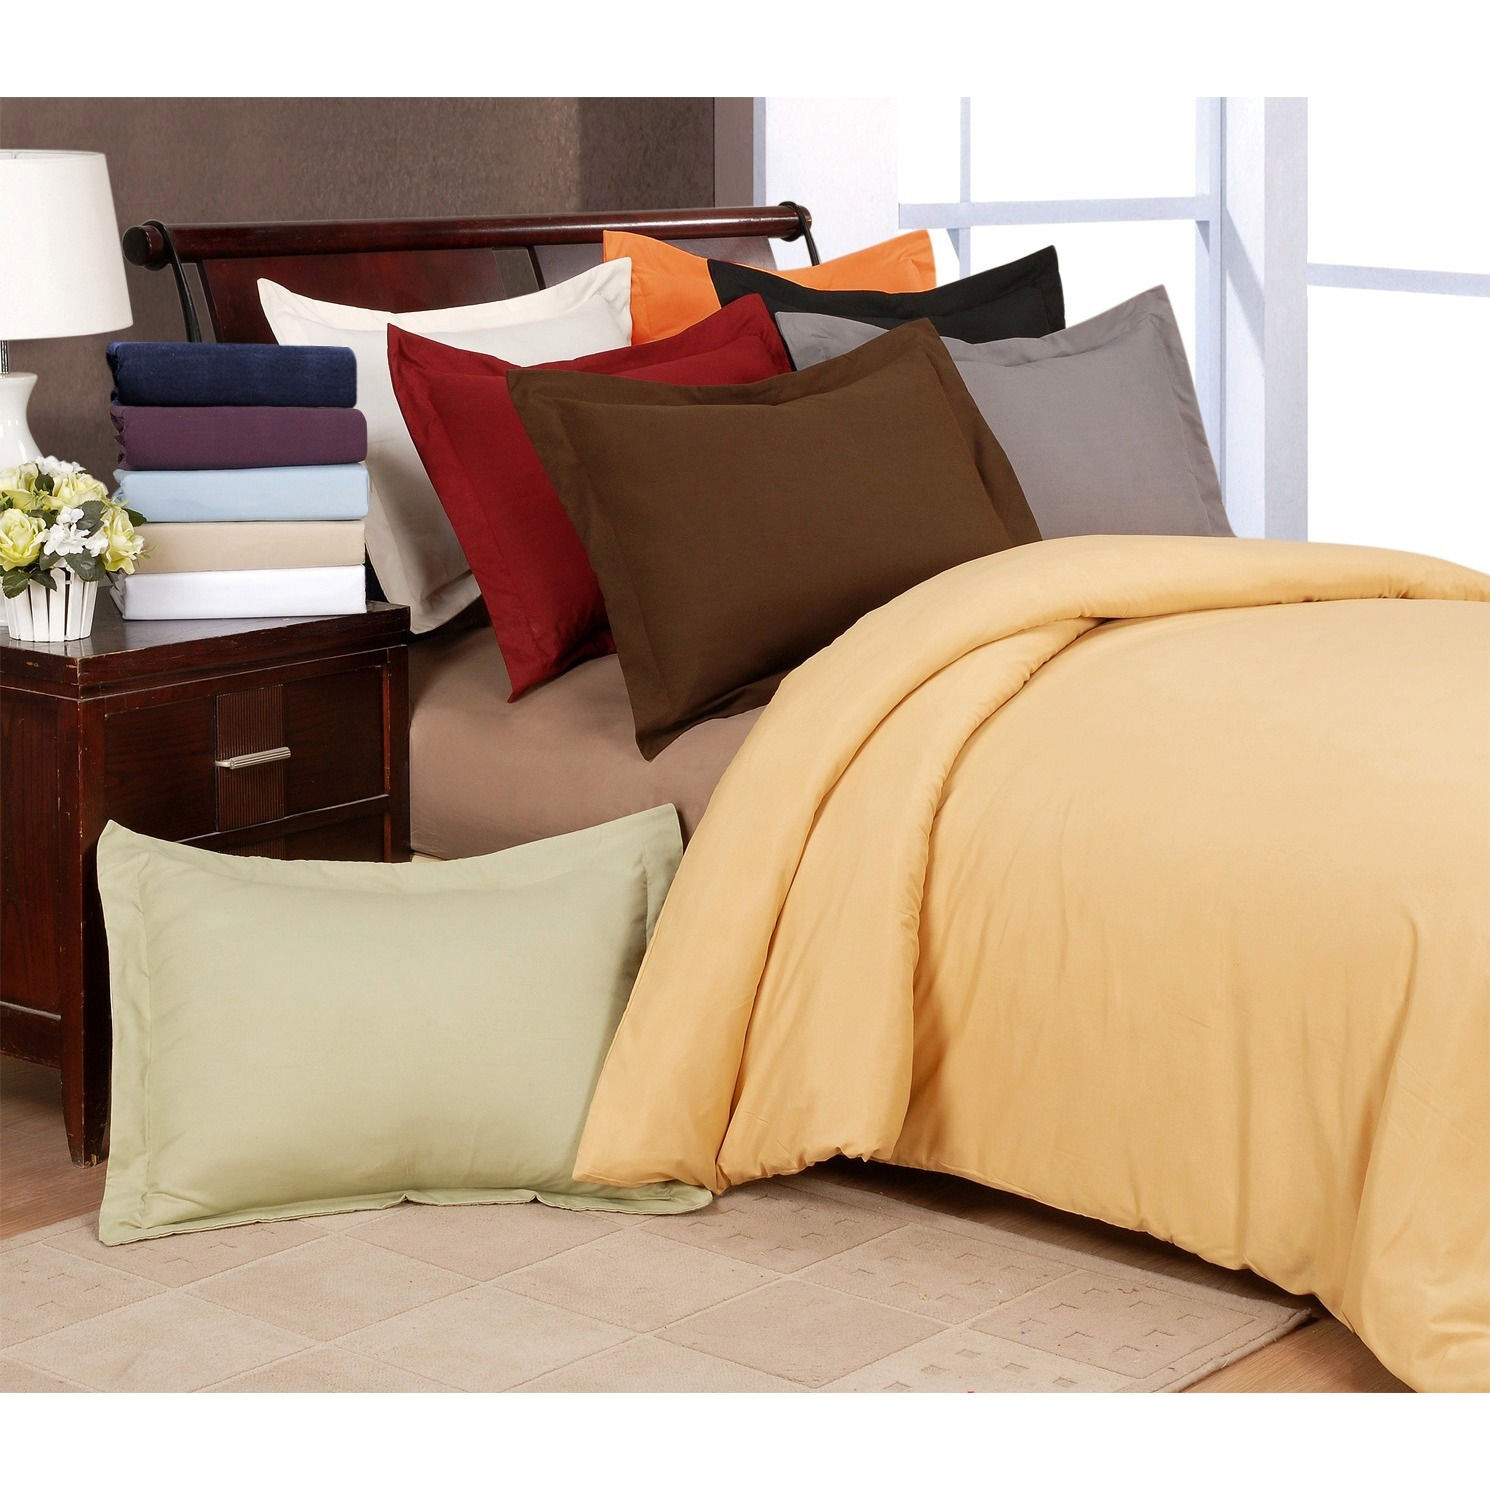 king bed skirt 15 inch drop bedskirts xl king size bed frame 980